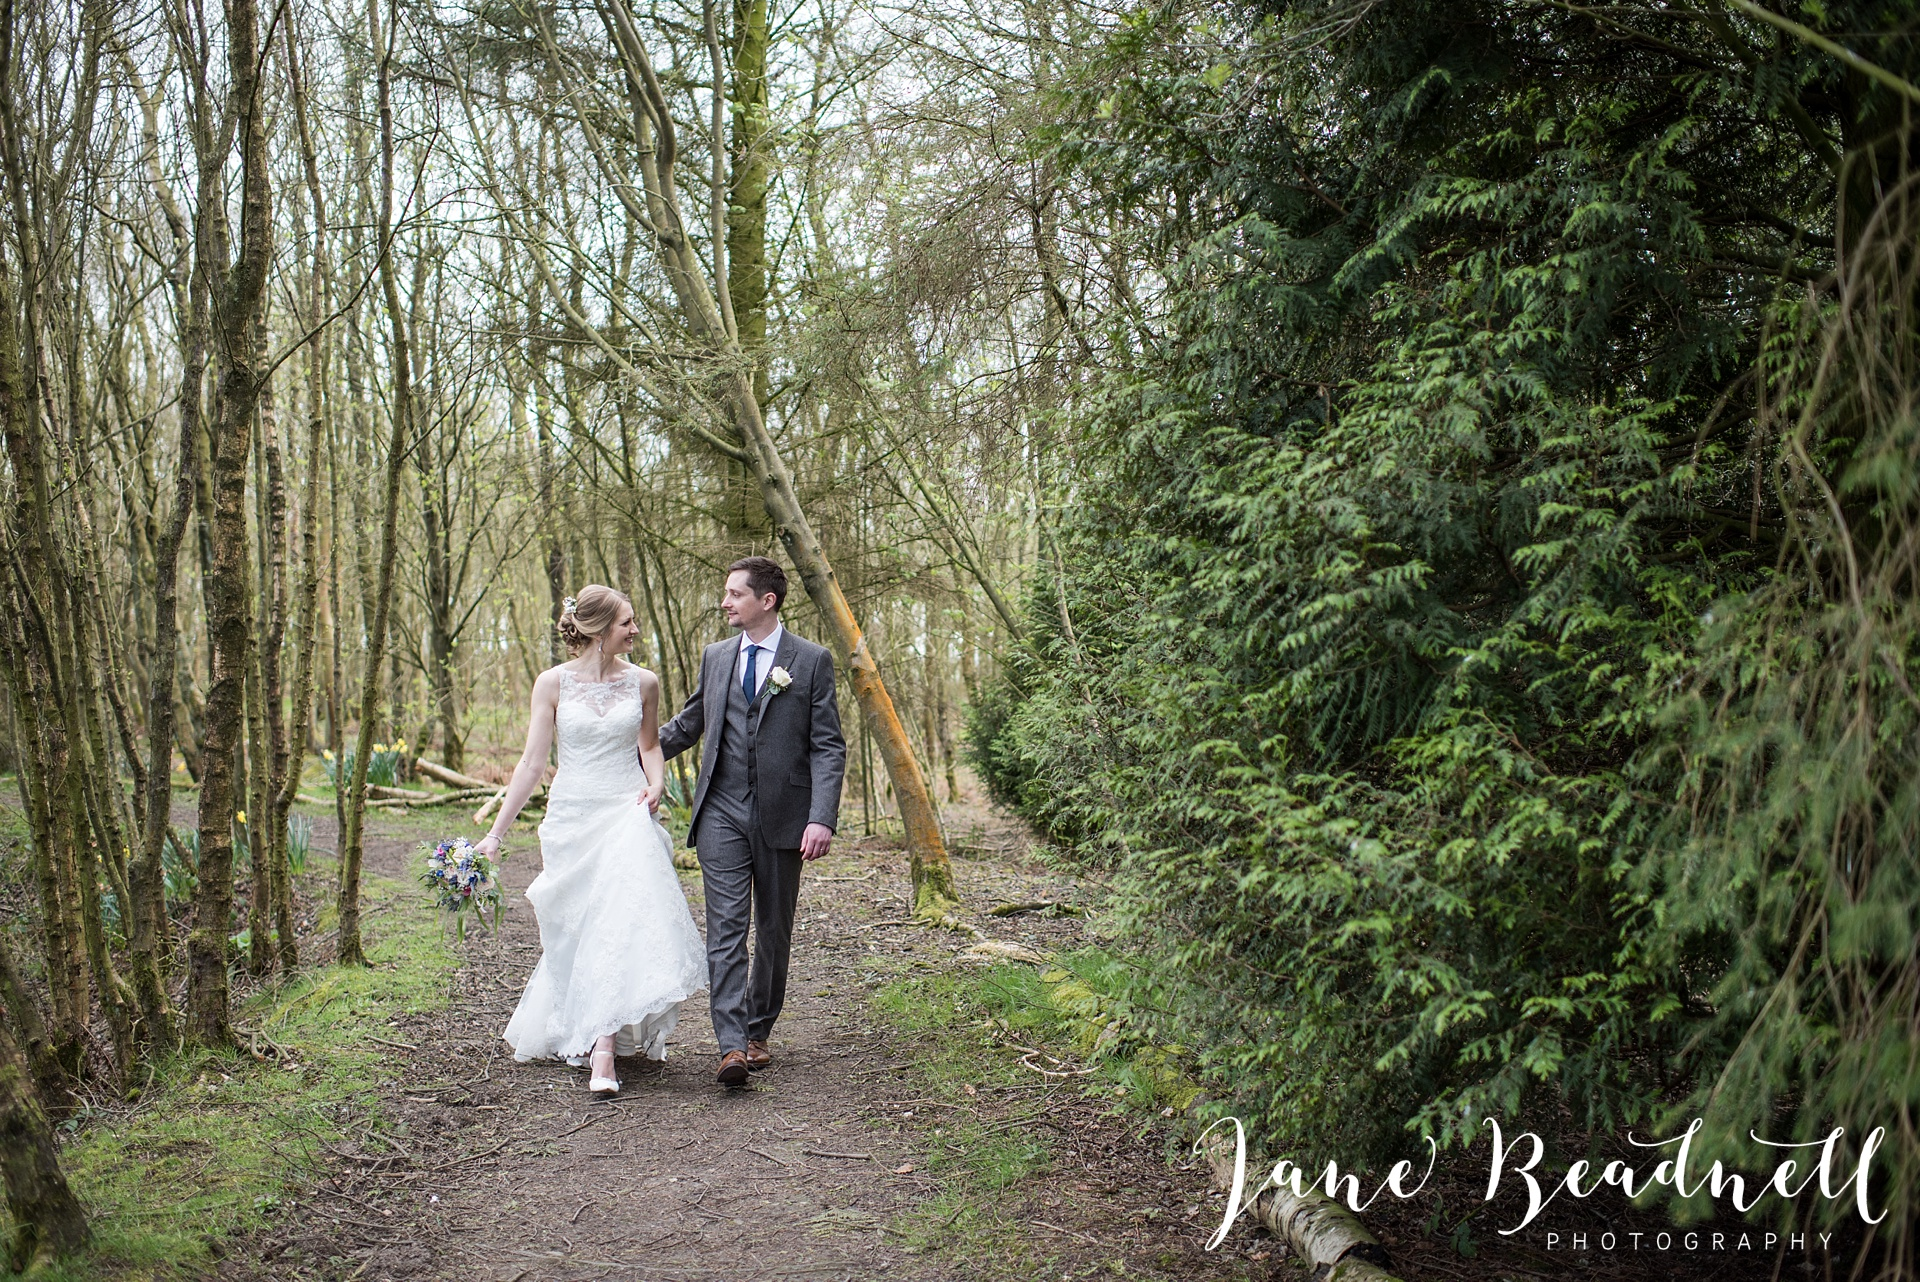 Otley Chevin Lodge wedding photography by Jane Beadnell Photography Leeds_0099